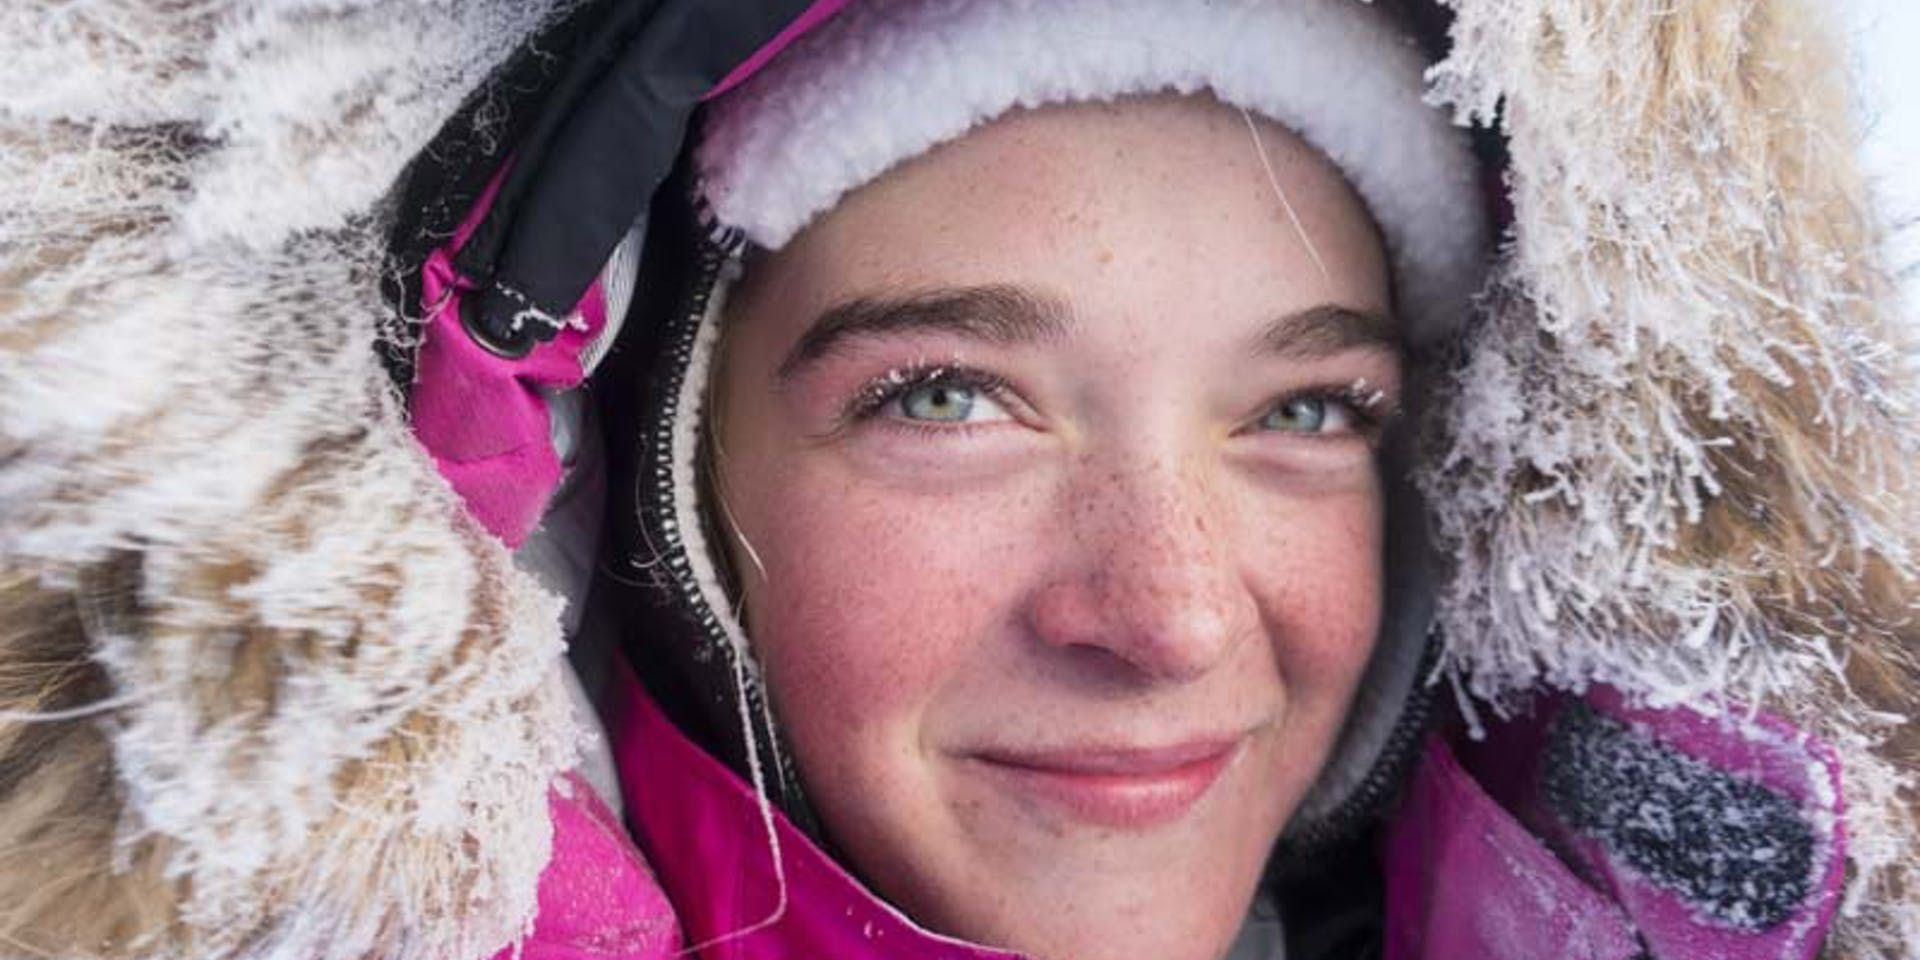 Meet Jade The Youngest Girl To Ski To The North Pole North Pole Skiing Style